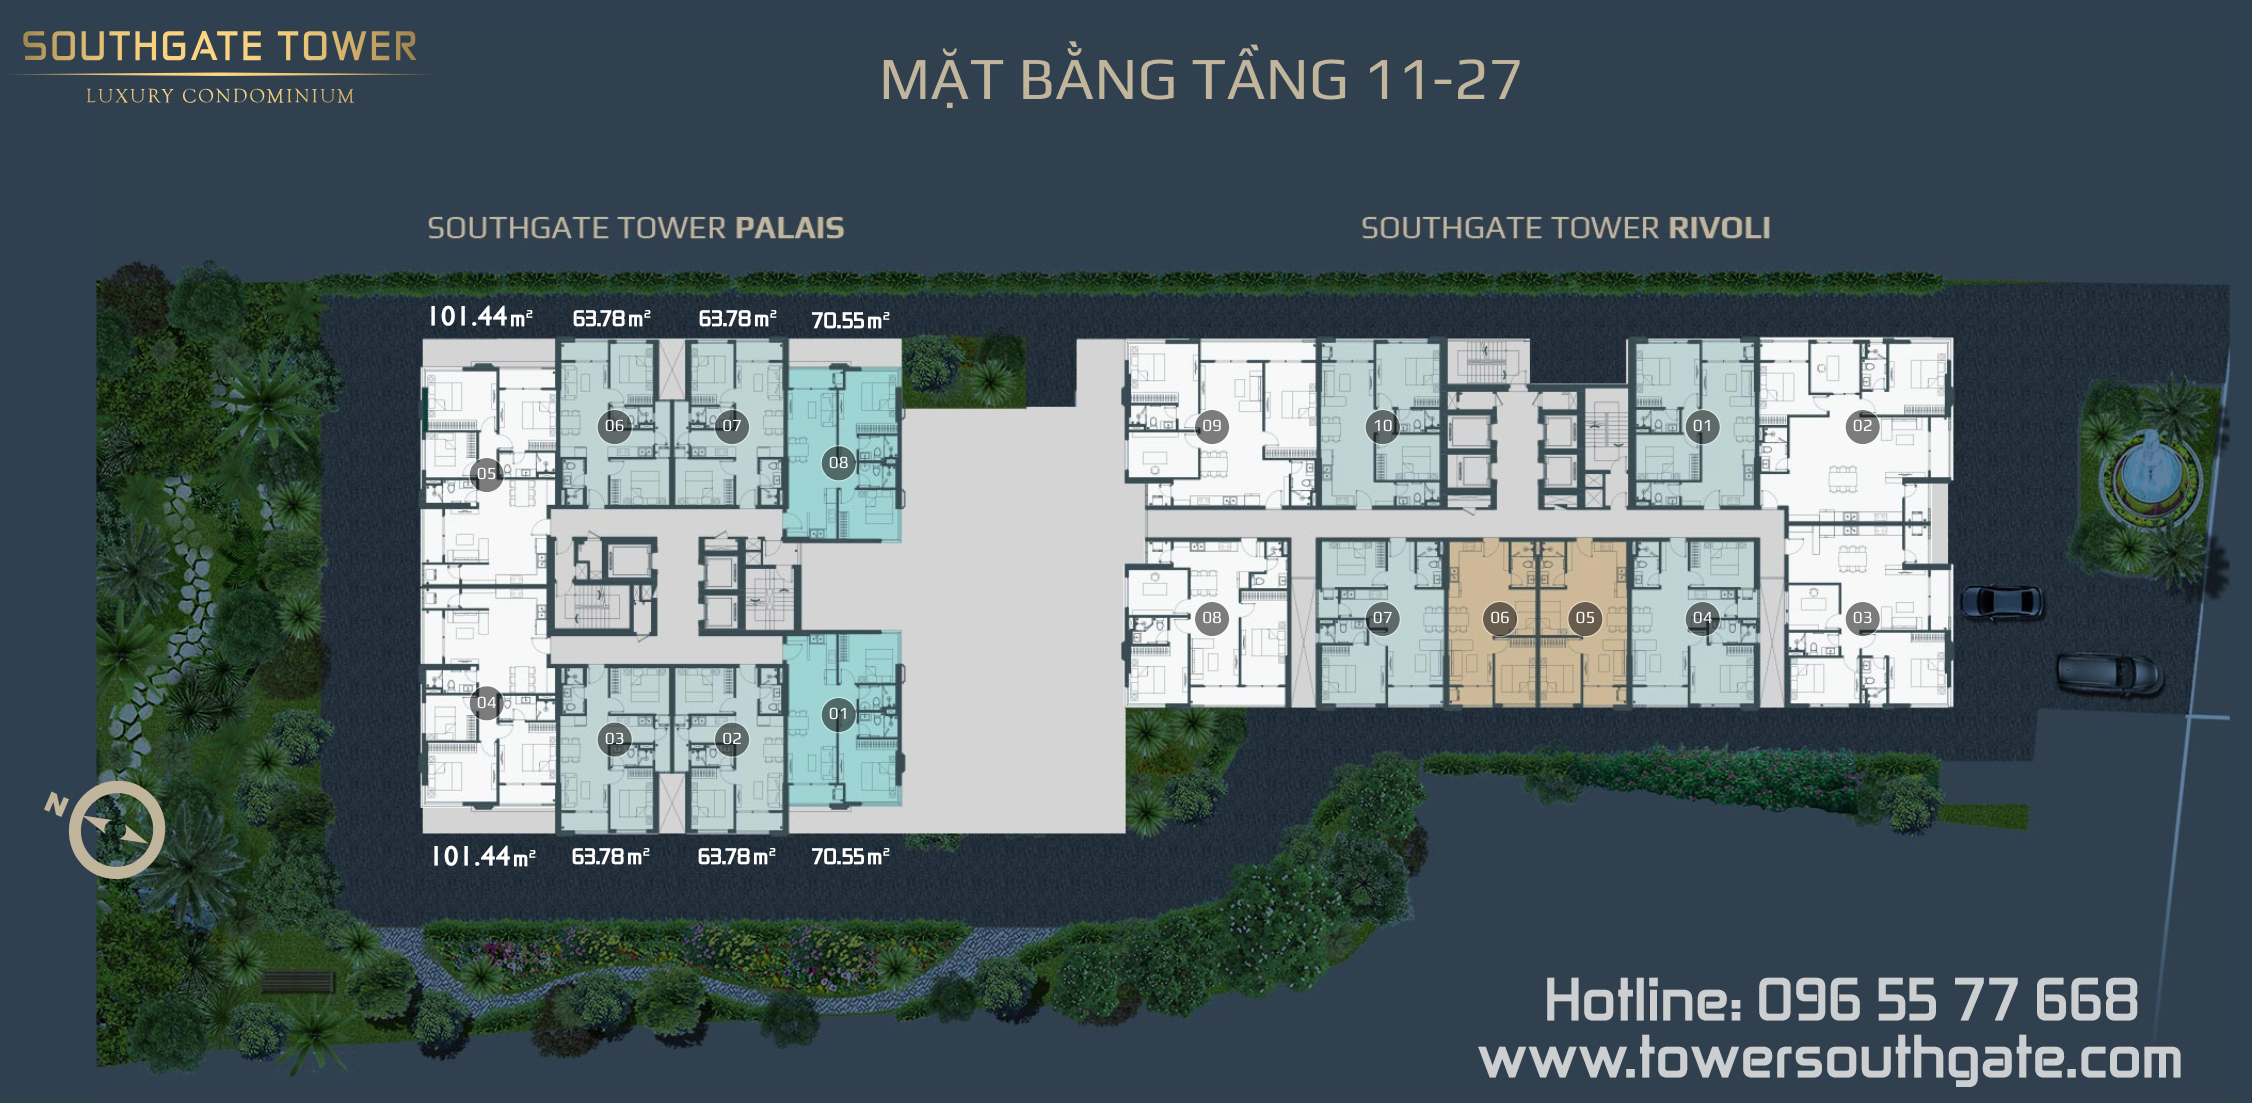 mat-bang-dien-hinh-southgate-tower